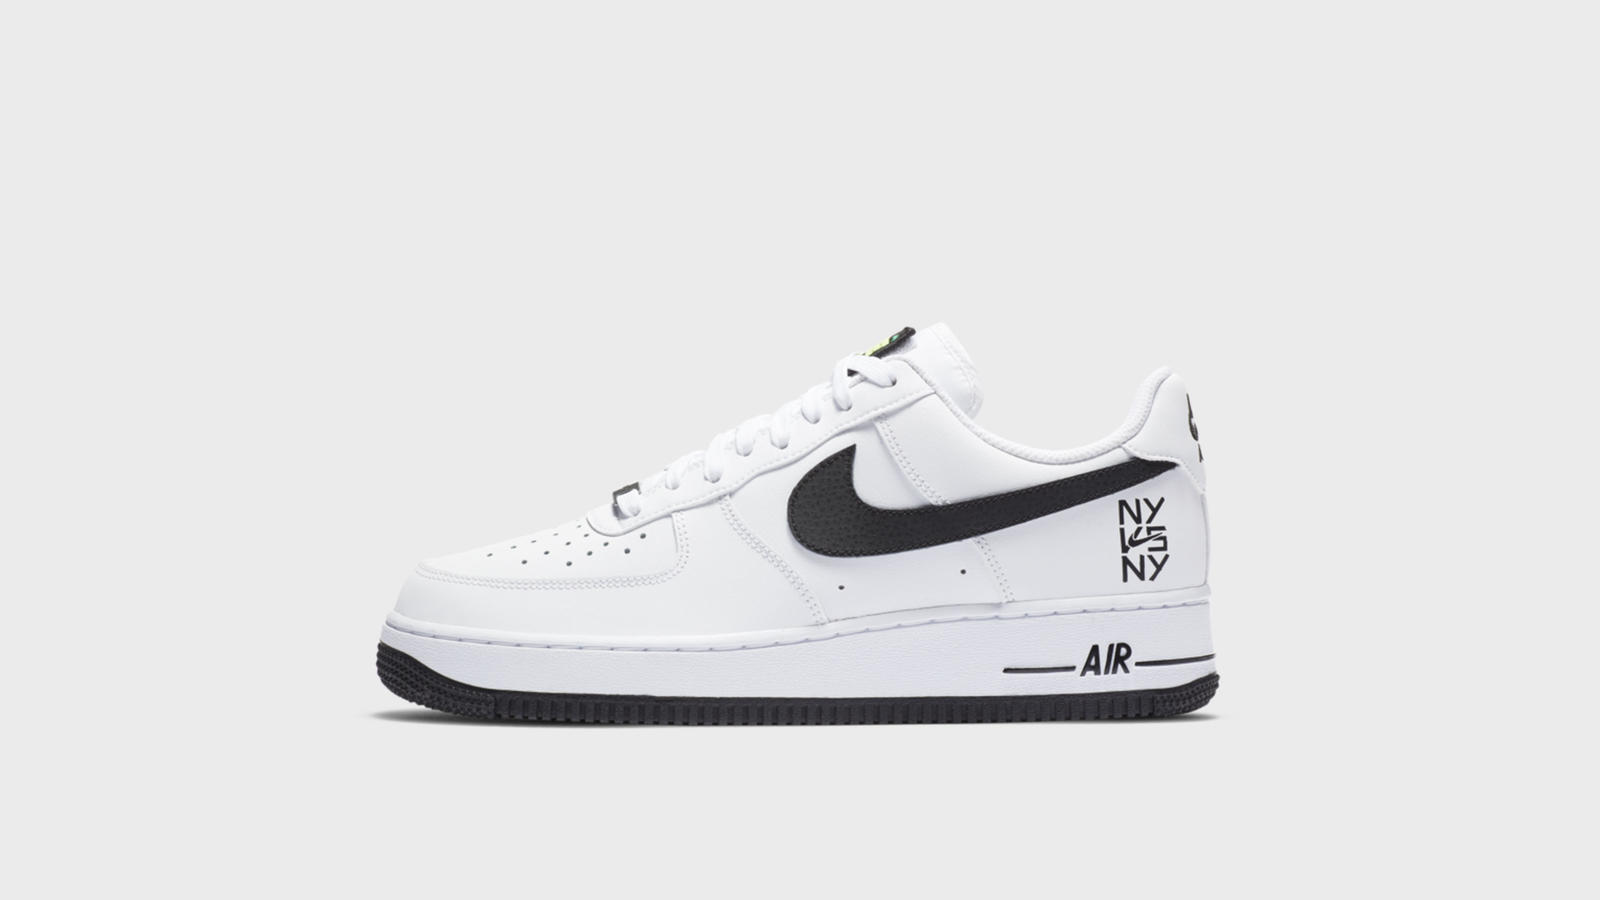 Nike Air Force 1 New York vs New York Los Angeles Drew League Official Images and Release Date 0